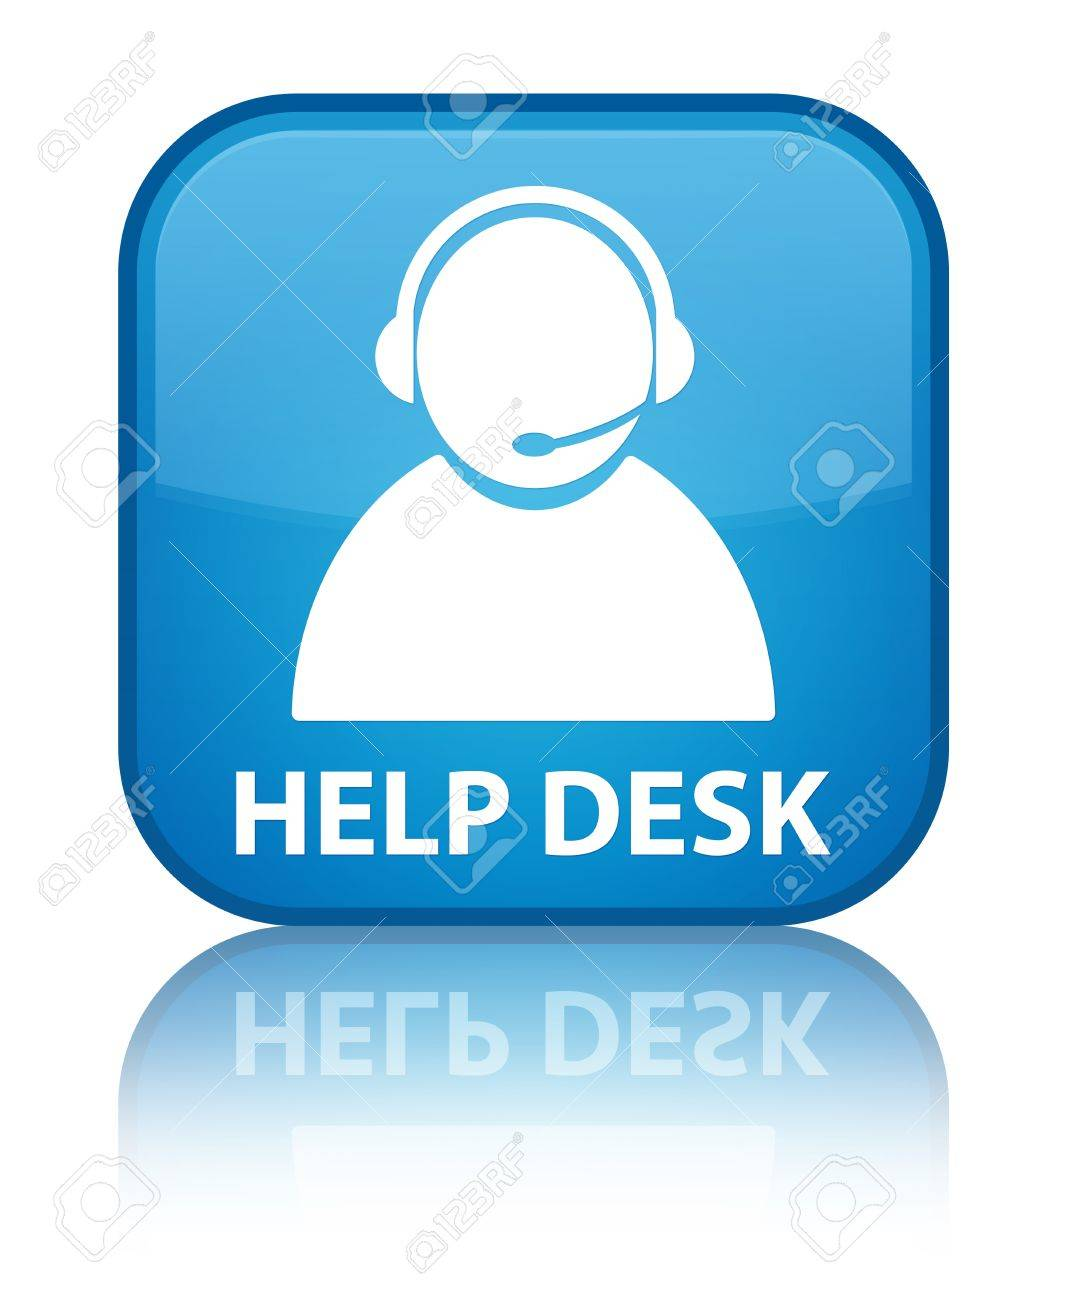 Help desk glossy blue reflected square button Stock Photo - 18570057